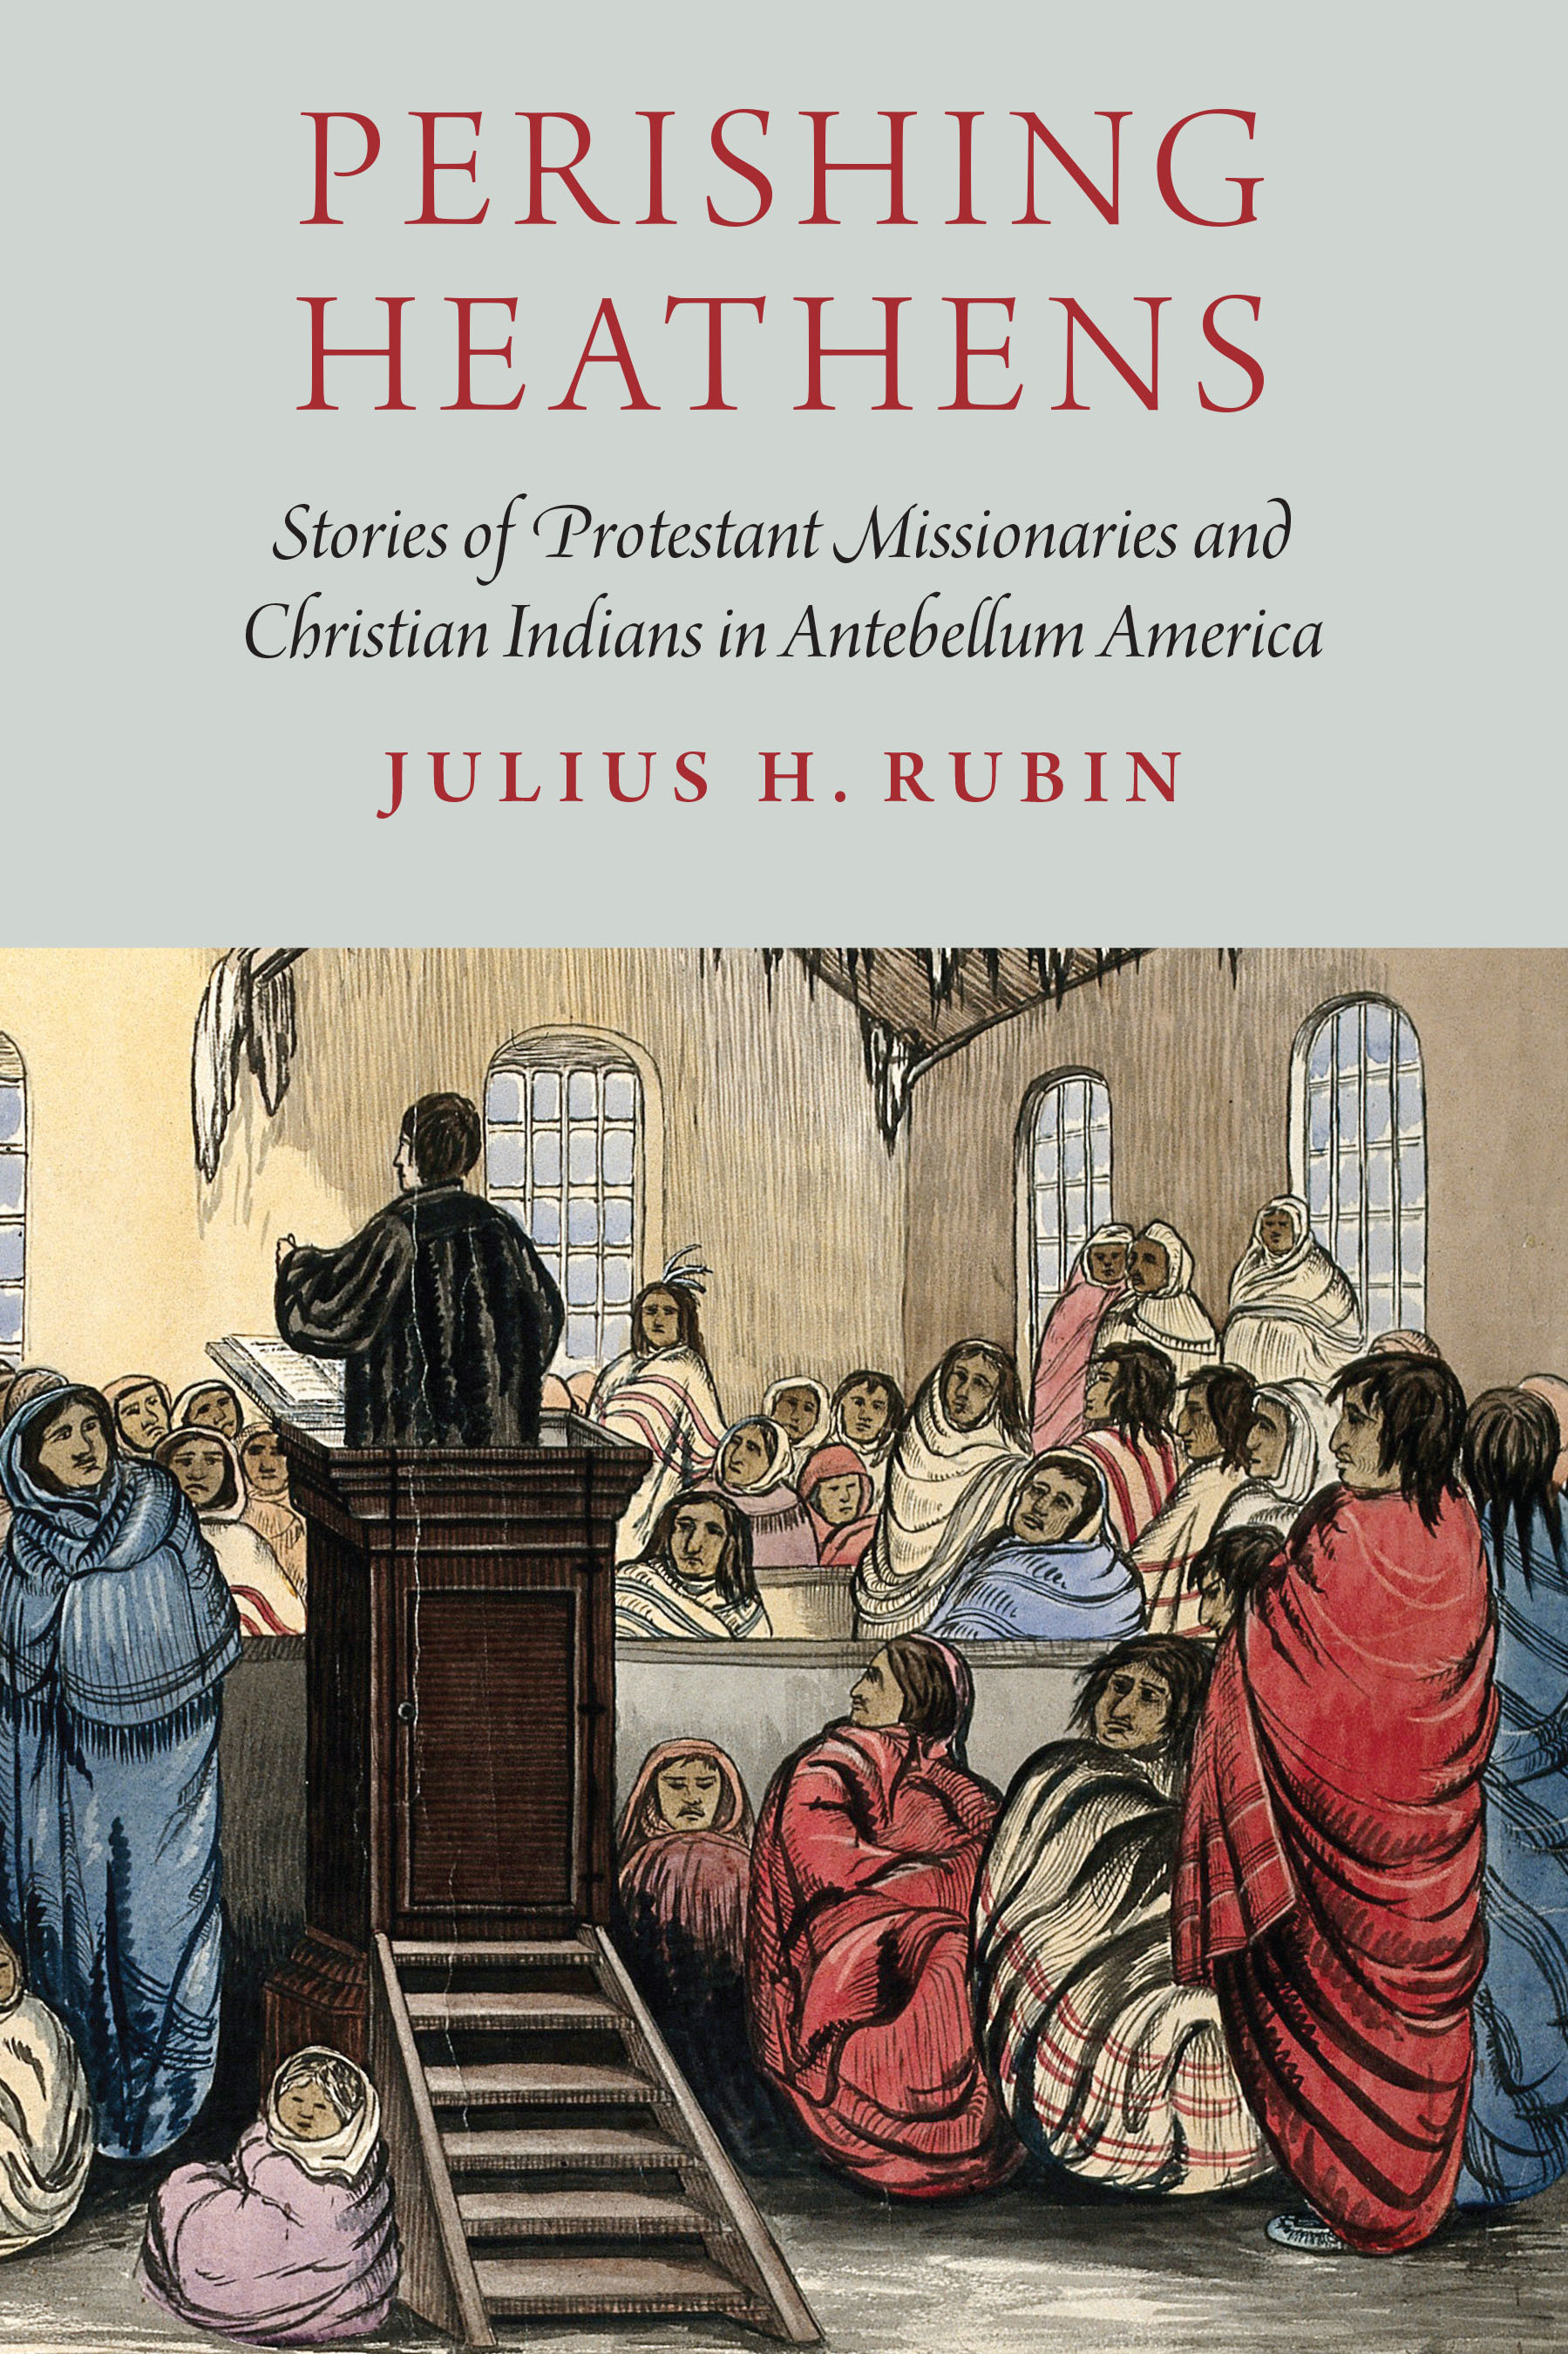 Perishing Heathens Stories of Protestant Missionaries and Christian Indians in Antebellum America